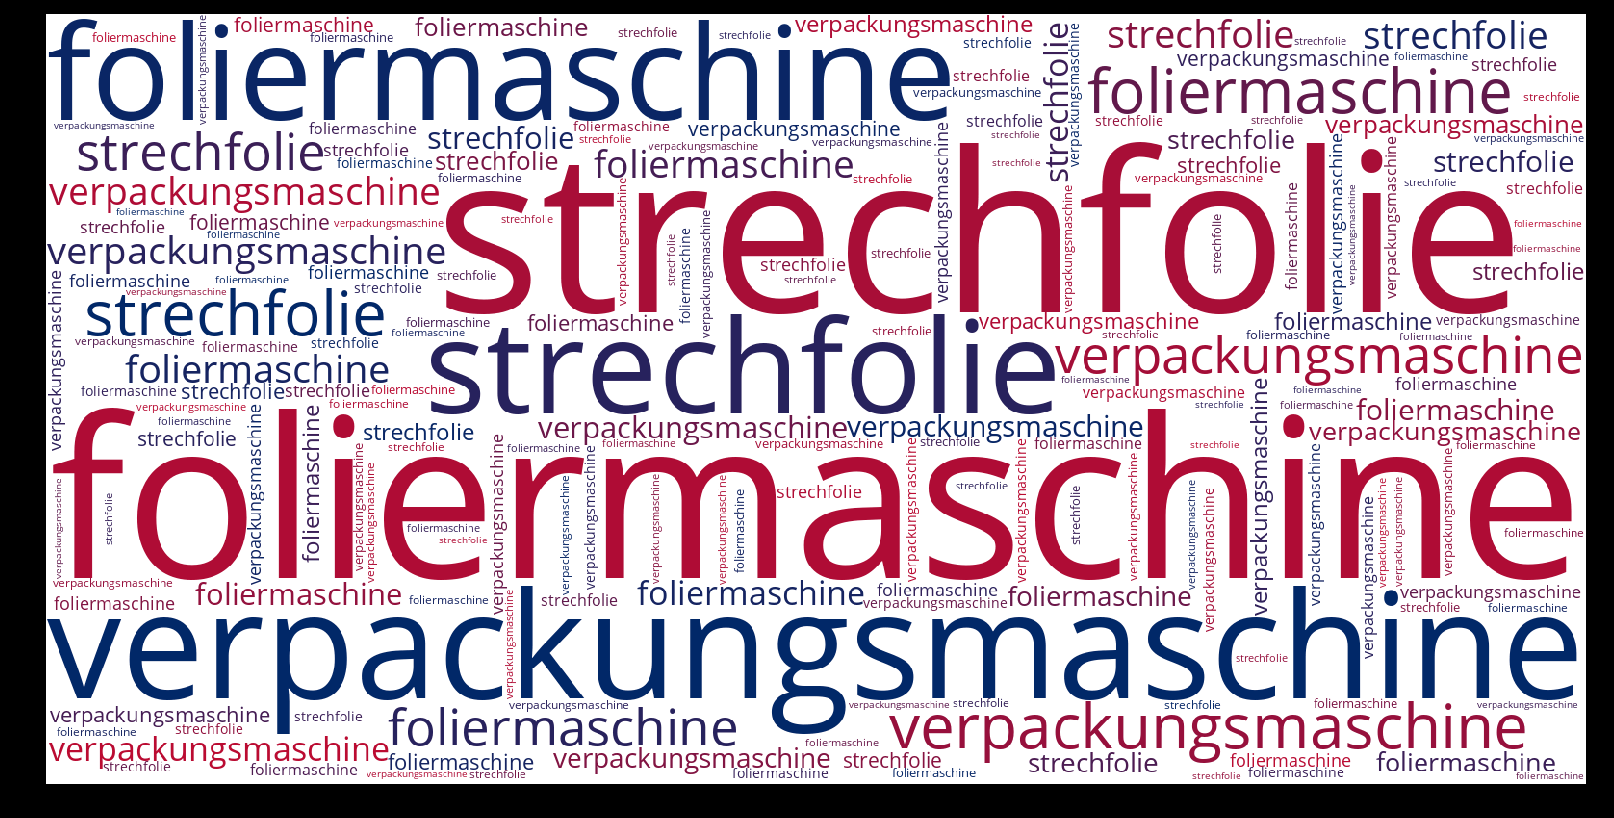 Foliermaschine-wordcloud